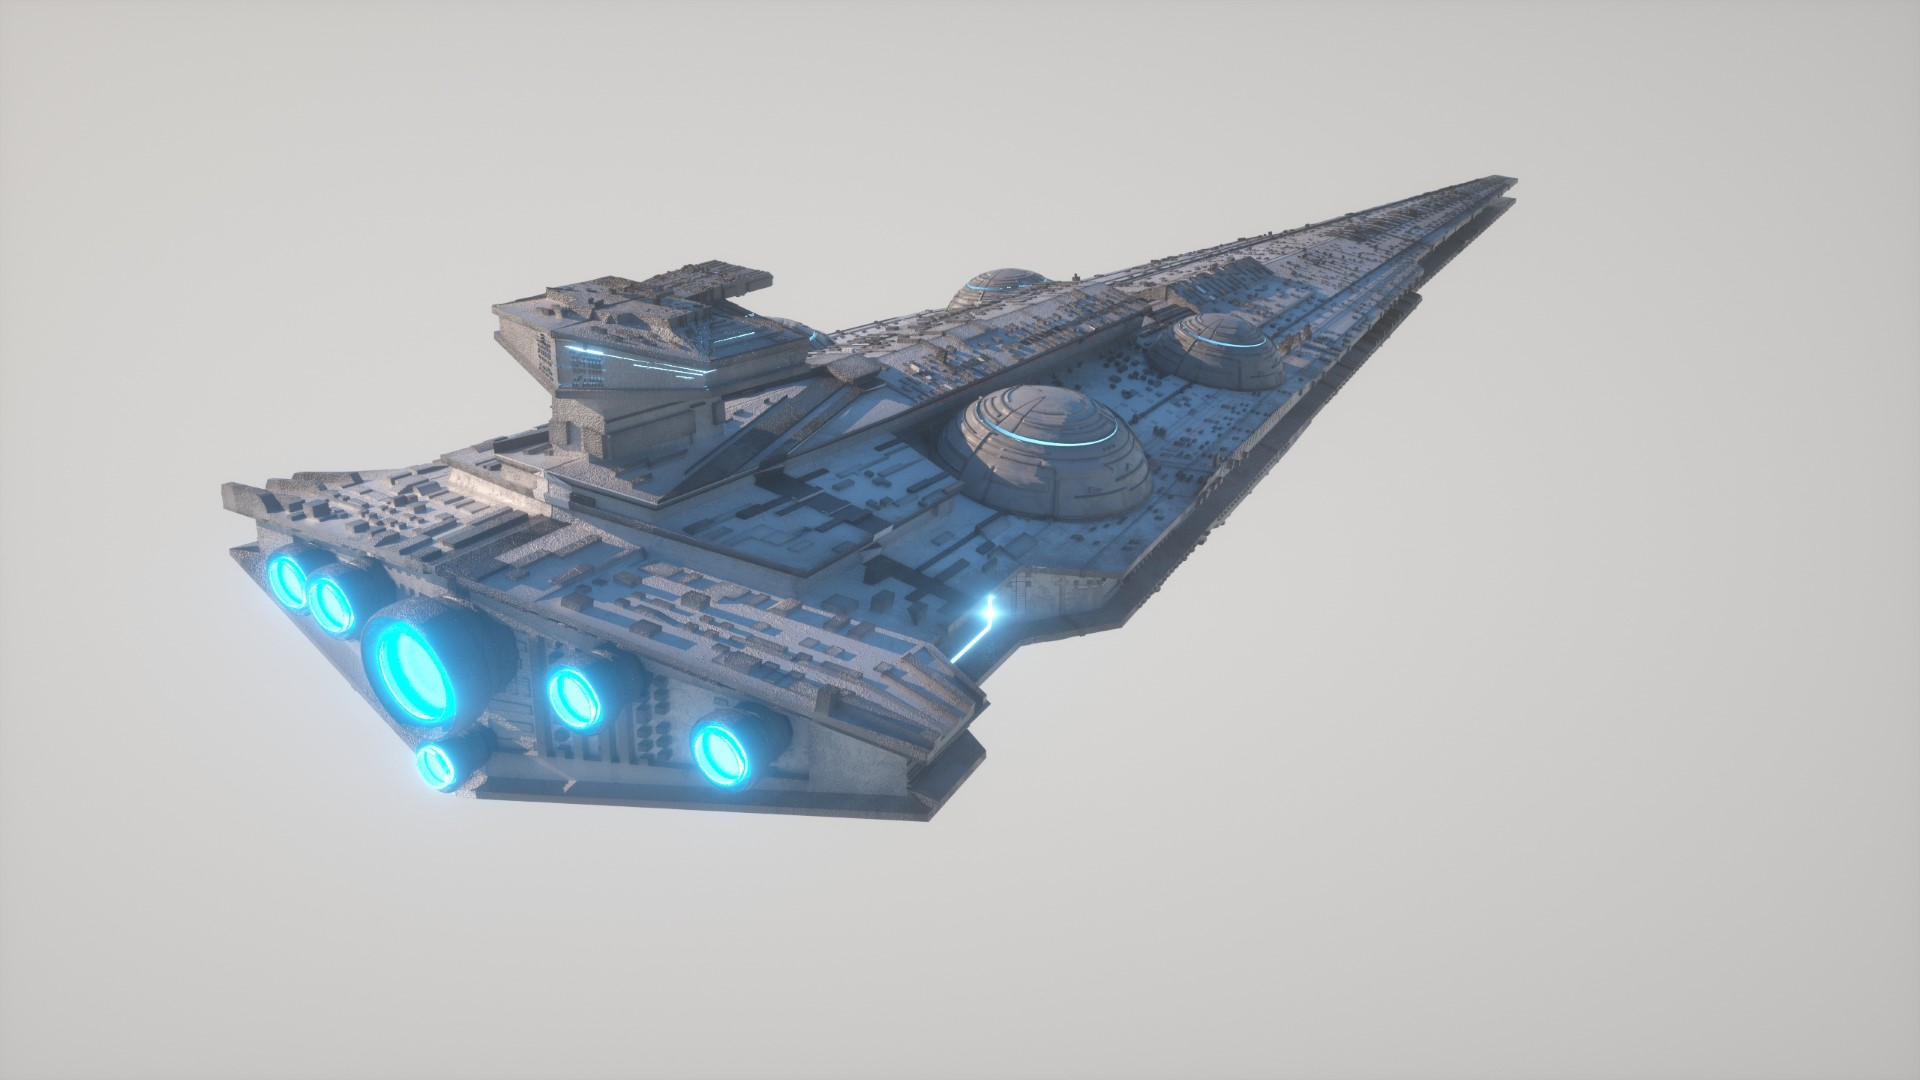 53-301115 interdictor cruiser star destroyer class clean3 (Large).jpg